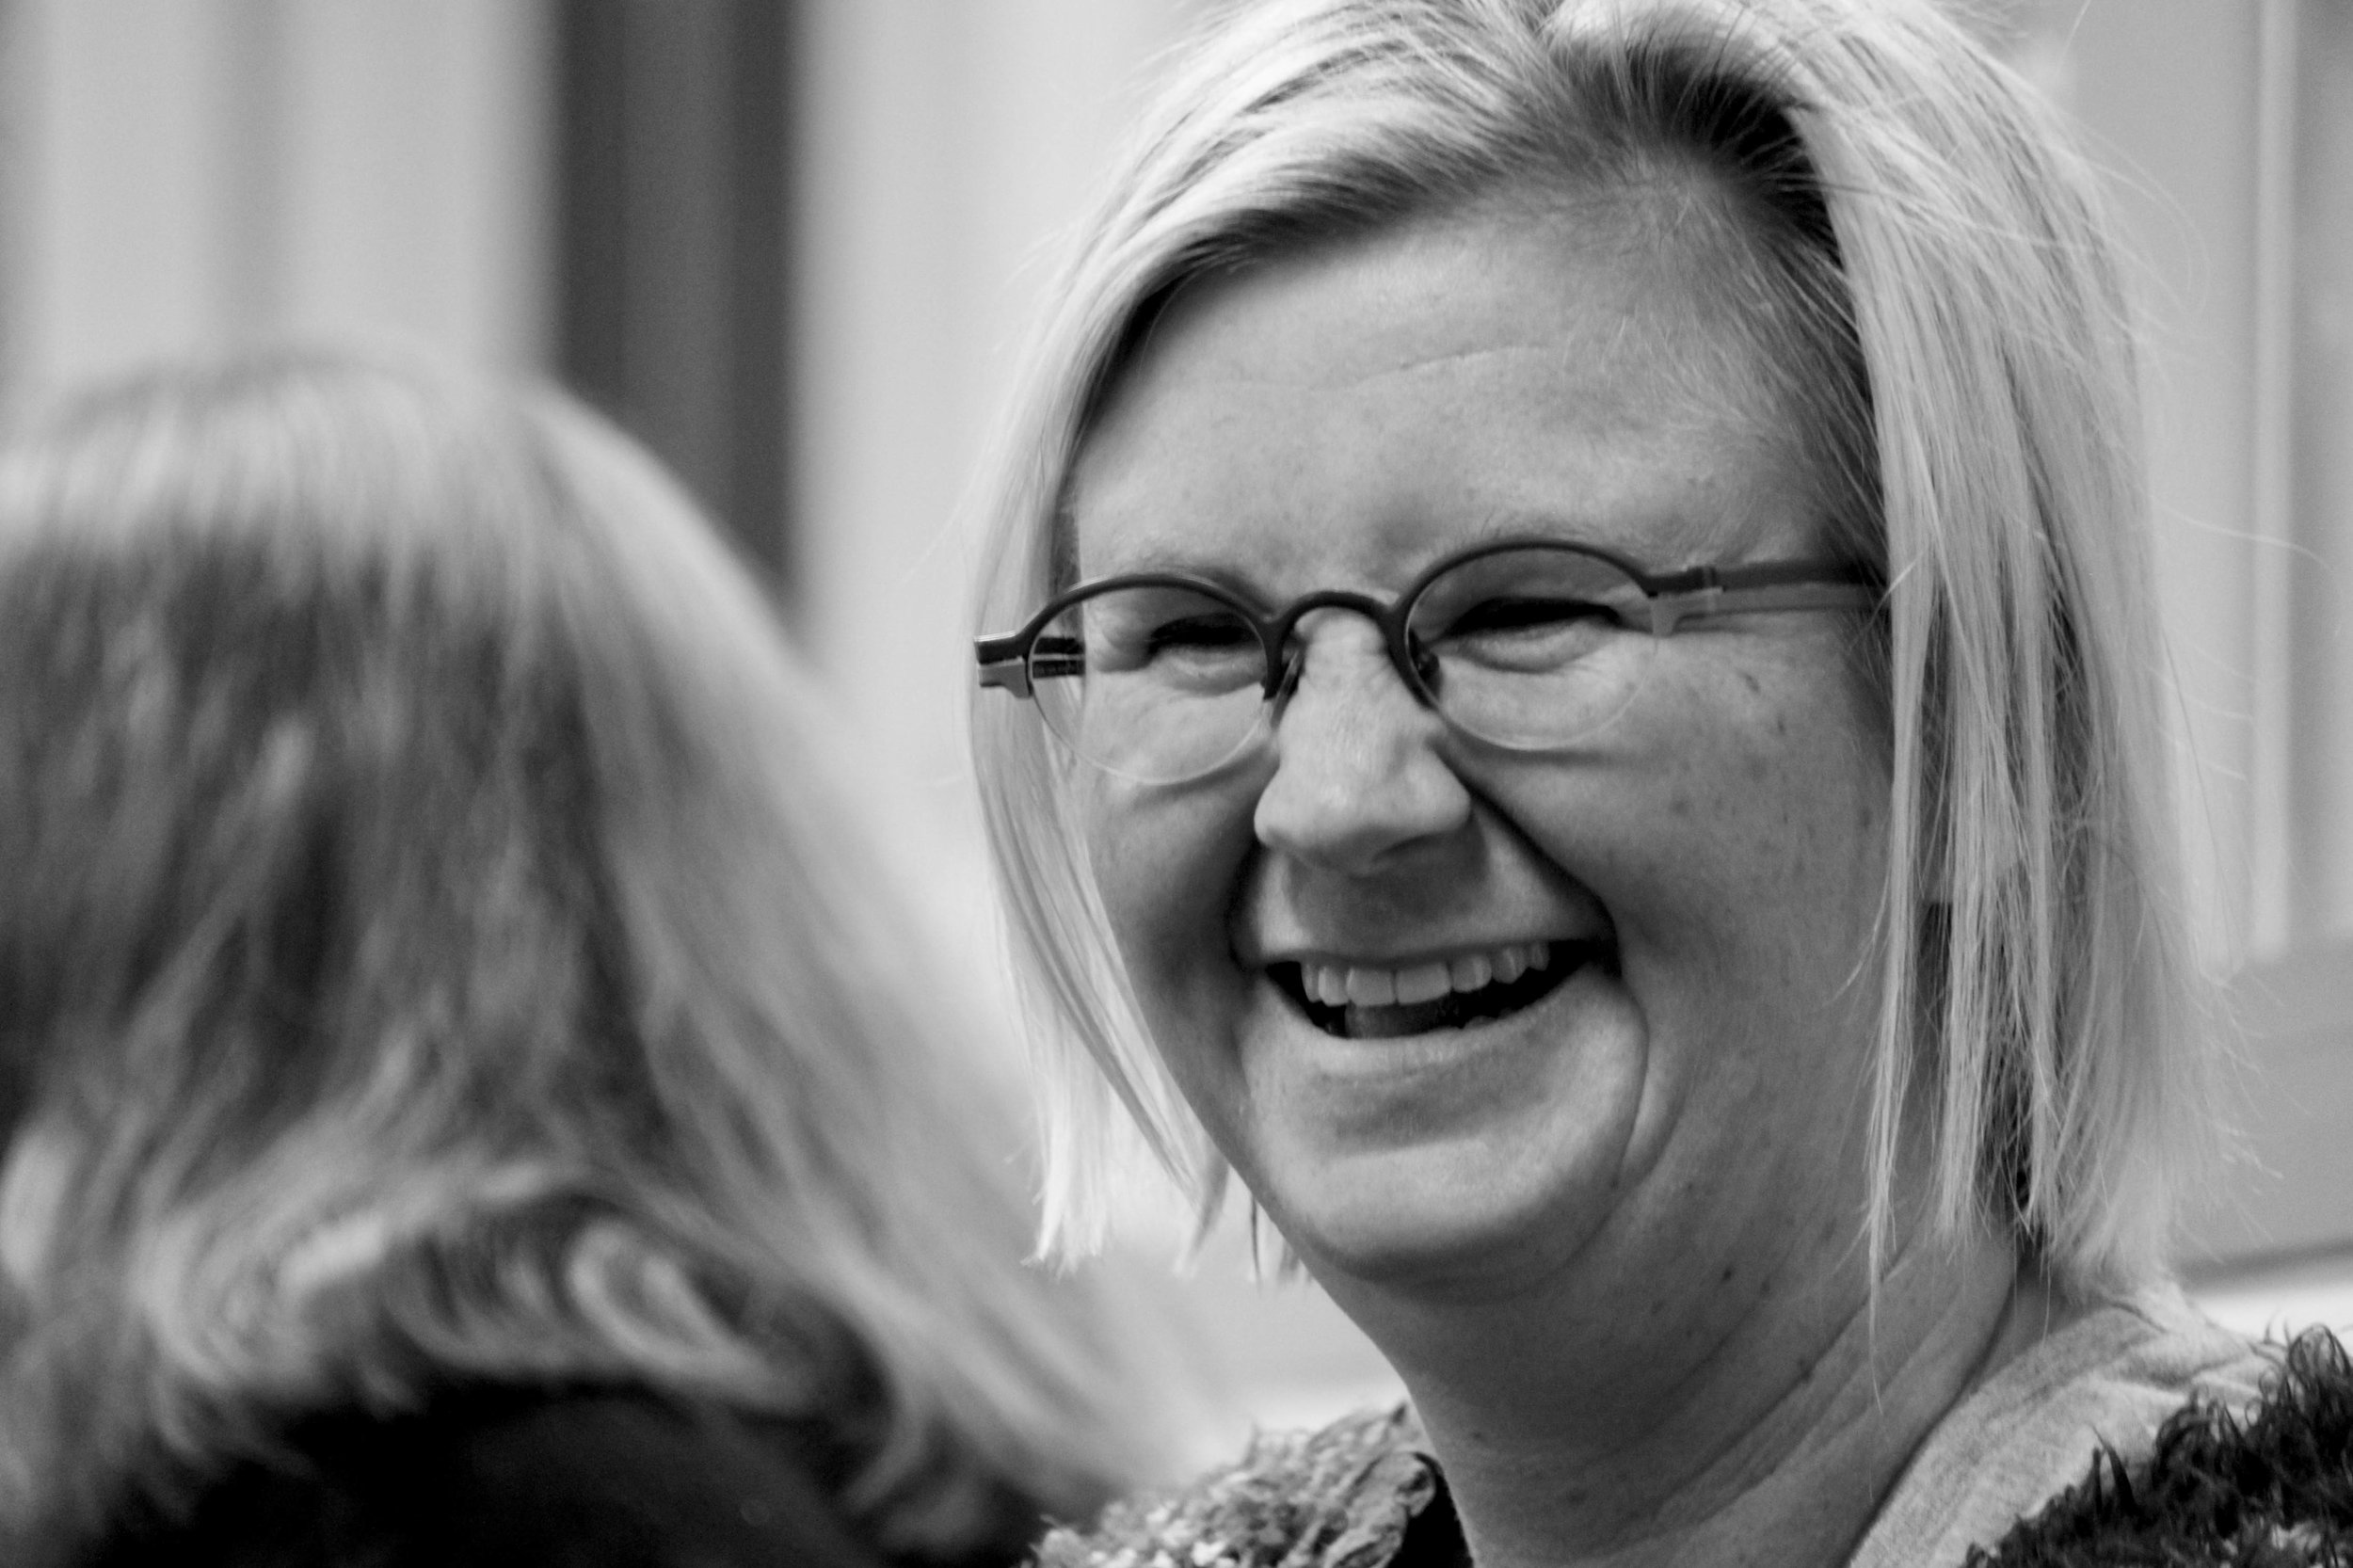 A close up of a woman's face. She wears glasses and her short hair is parted on one side. She is smiling, almost laughing at someone out of shot. It is clear she is making eye contact with the person who she is smiling at.